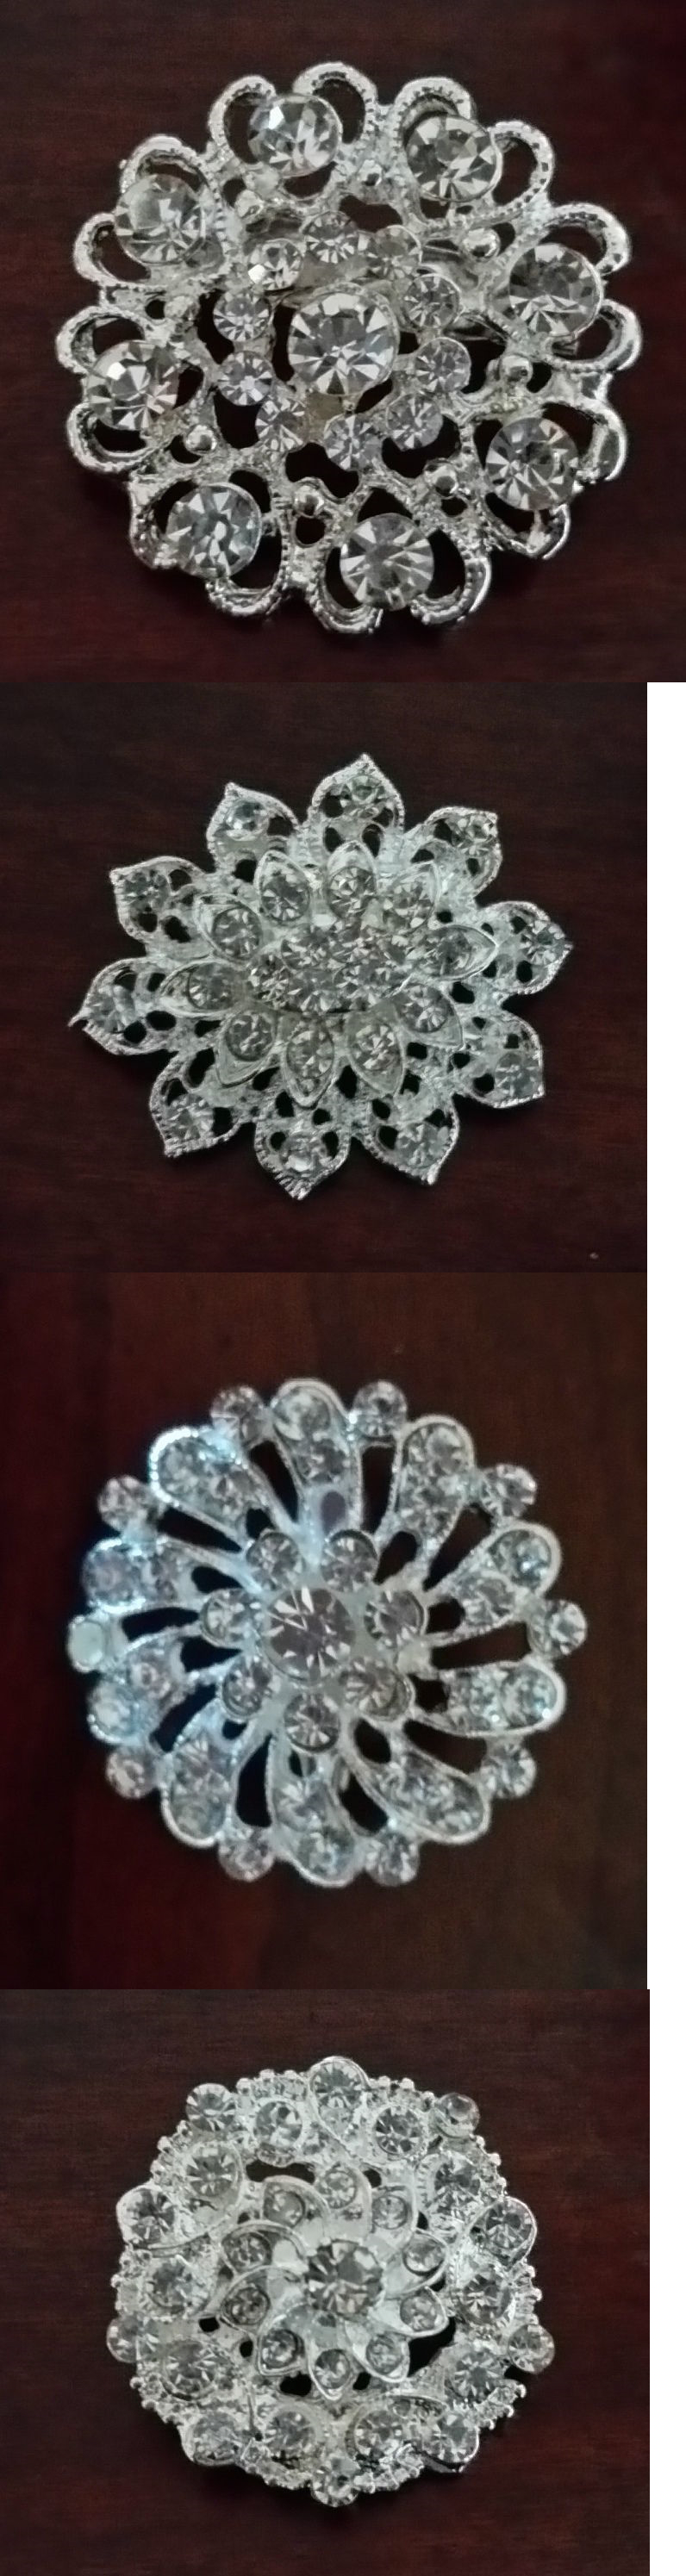 Buttons 7320: Lot Of 108 Assorted Crystal Rhinestone Brooches ...